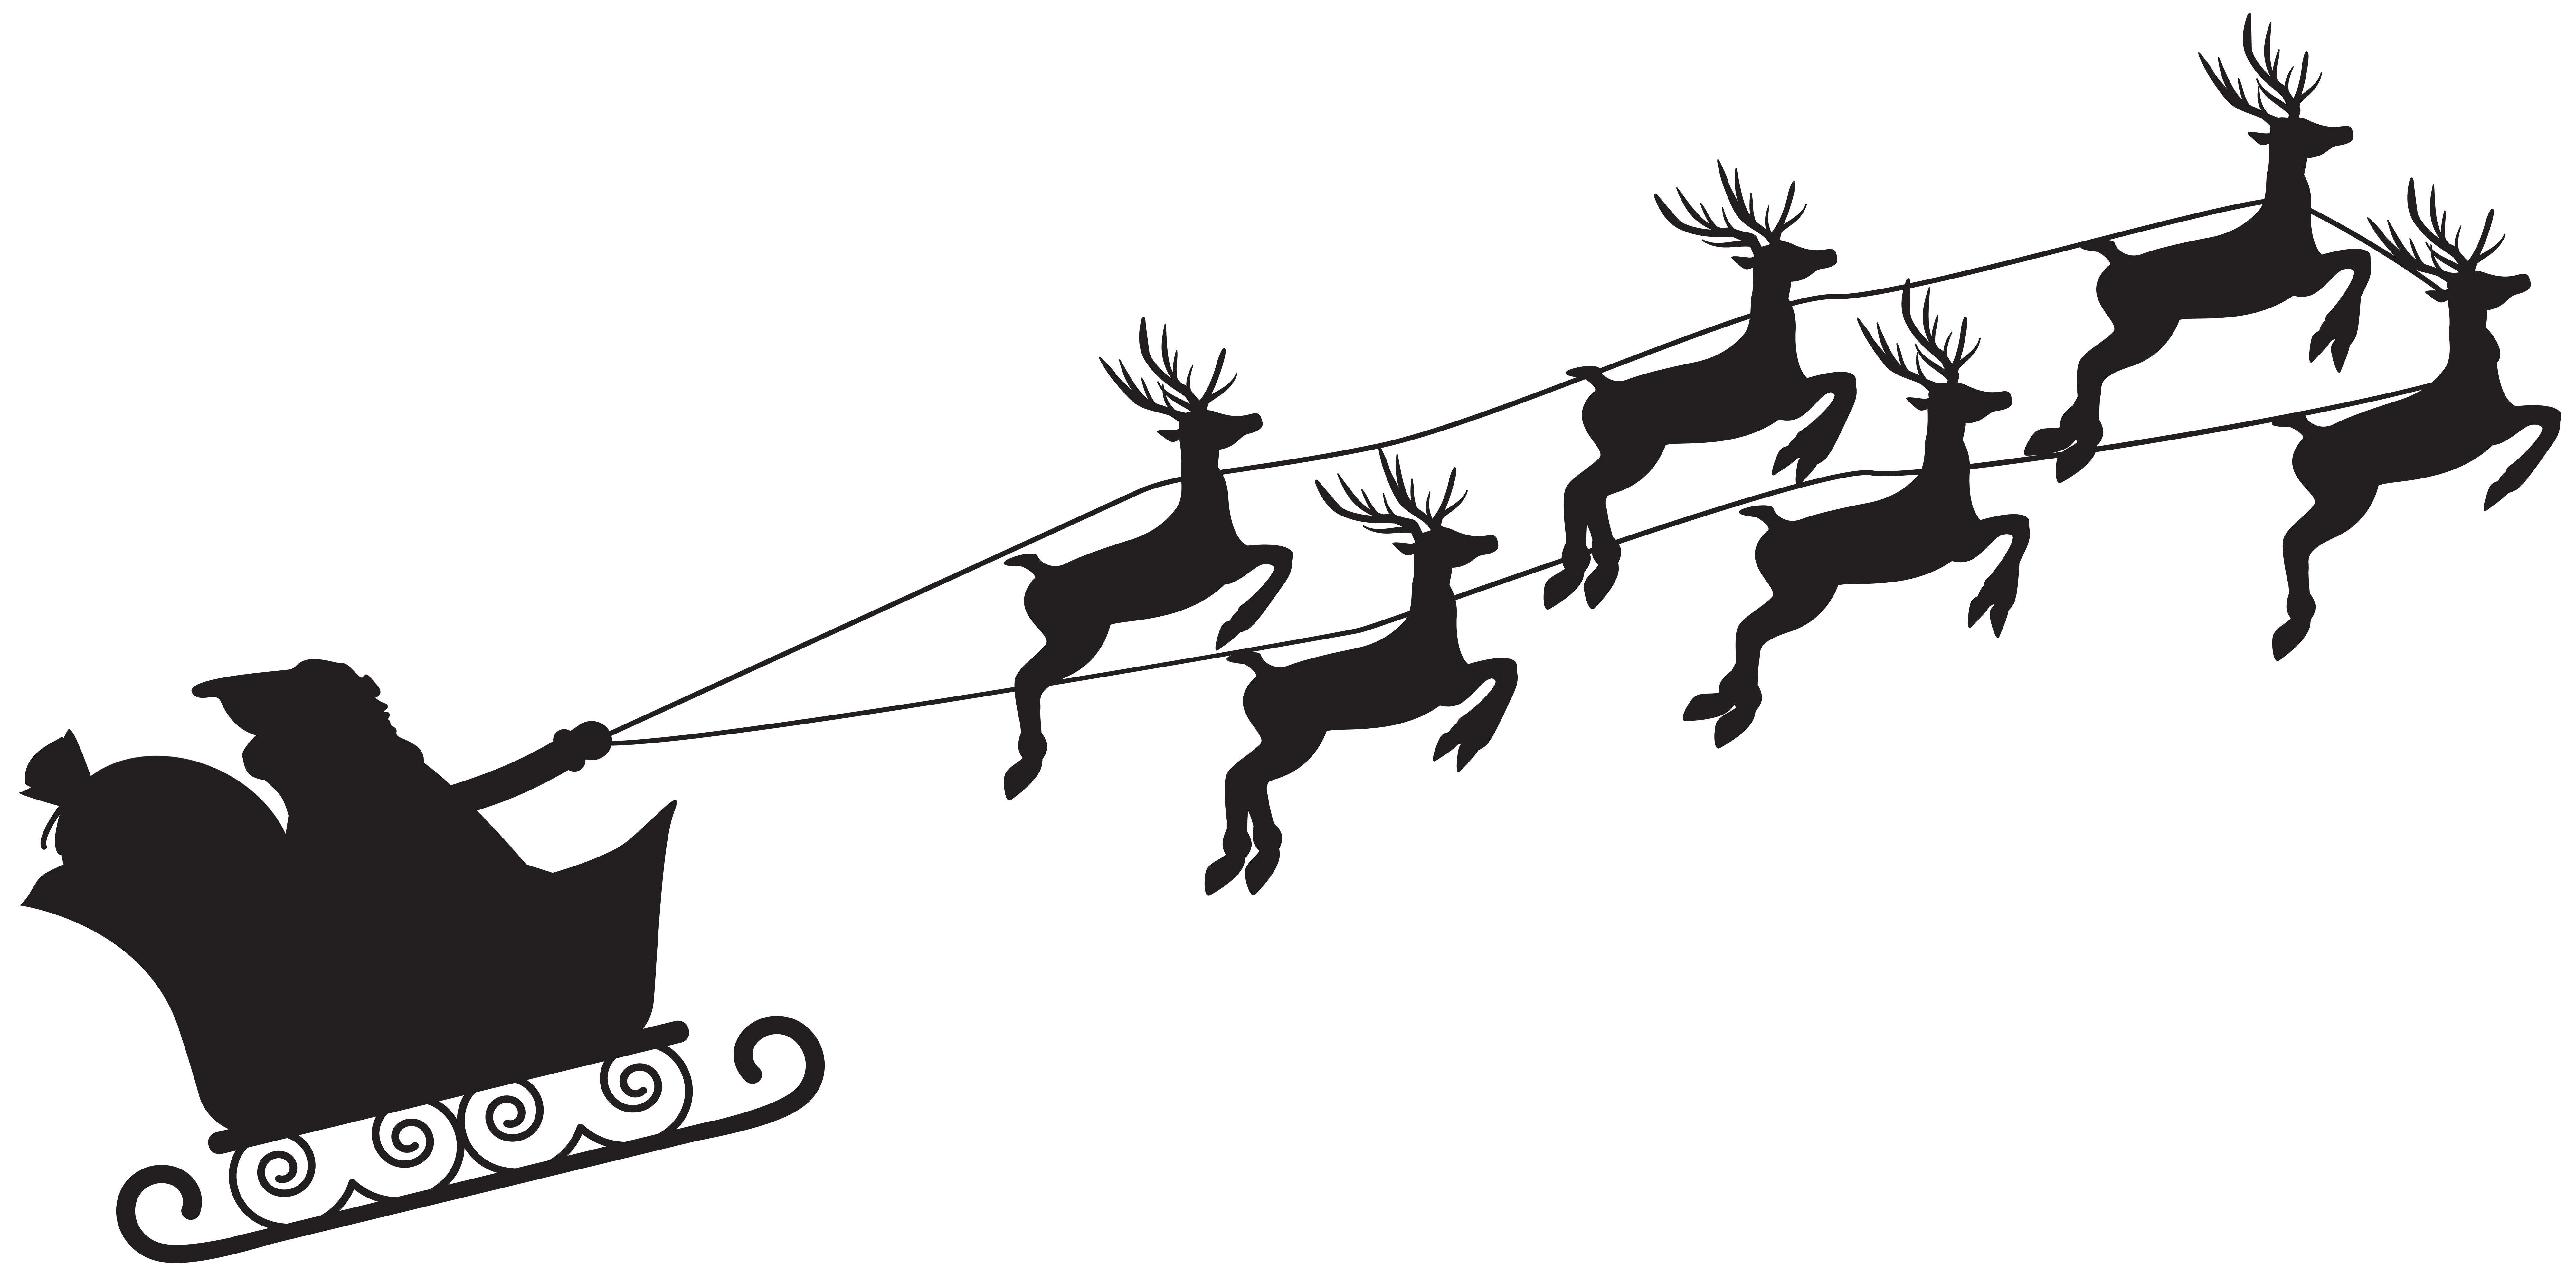 Santa and reindeer silhouette png. Claus clip art gallery